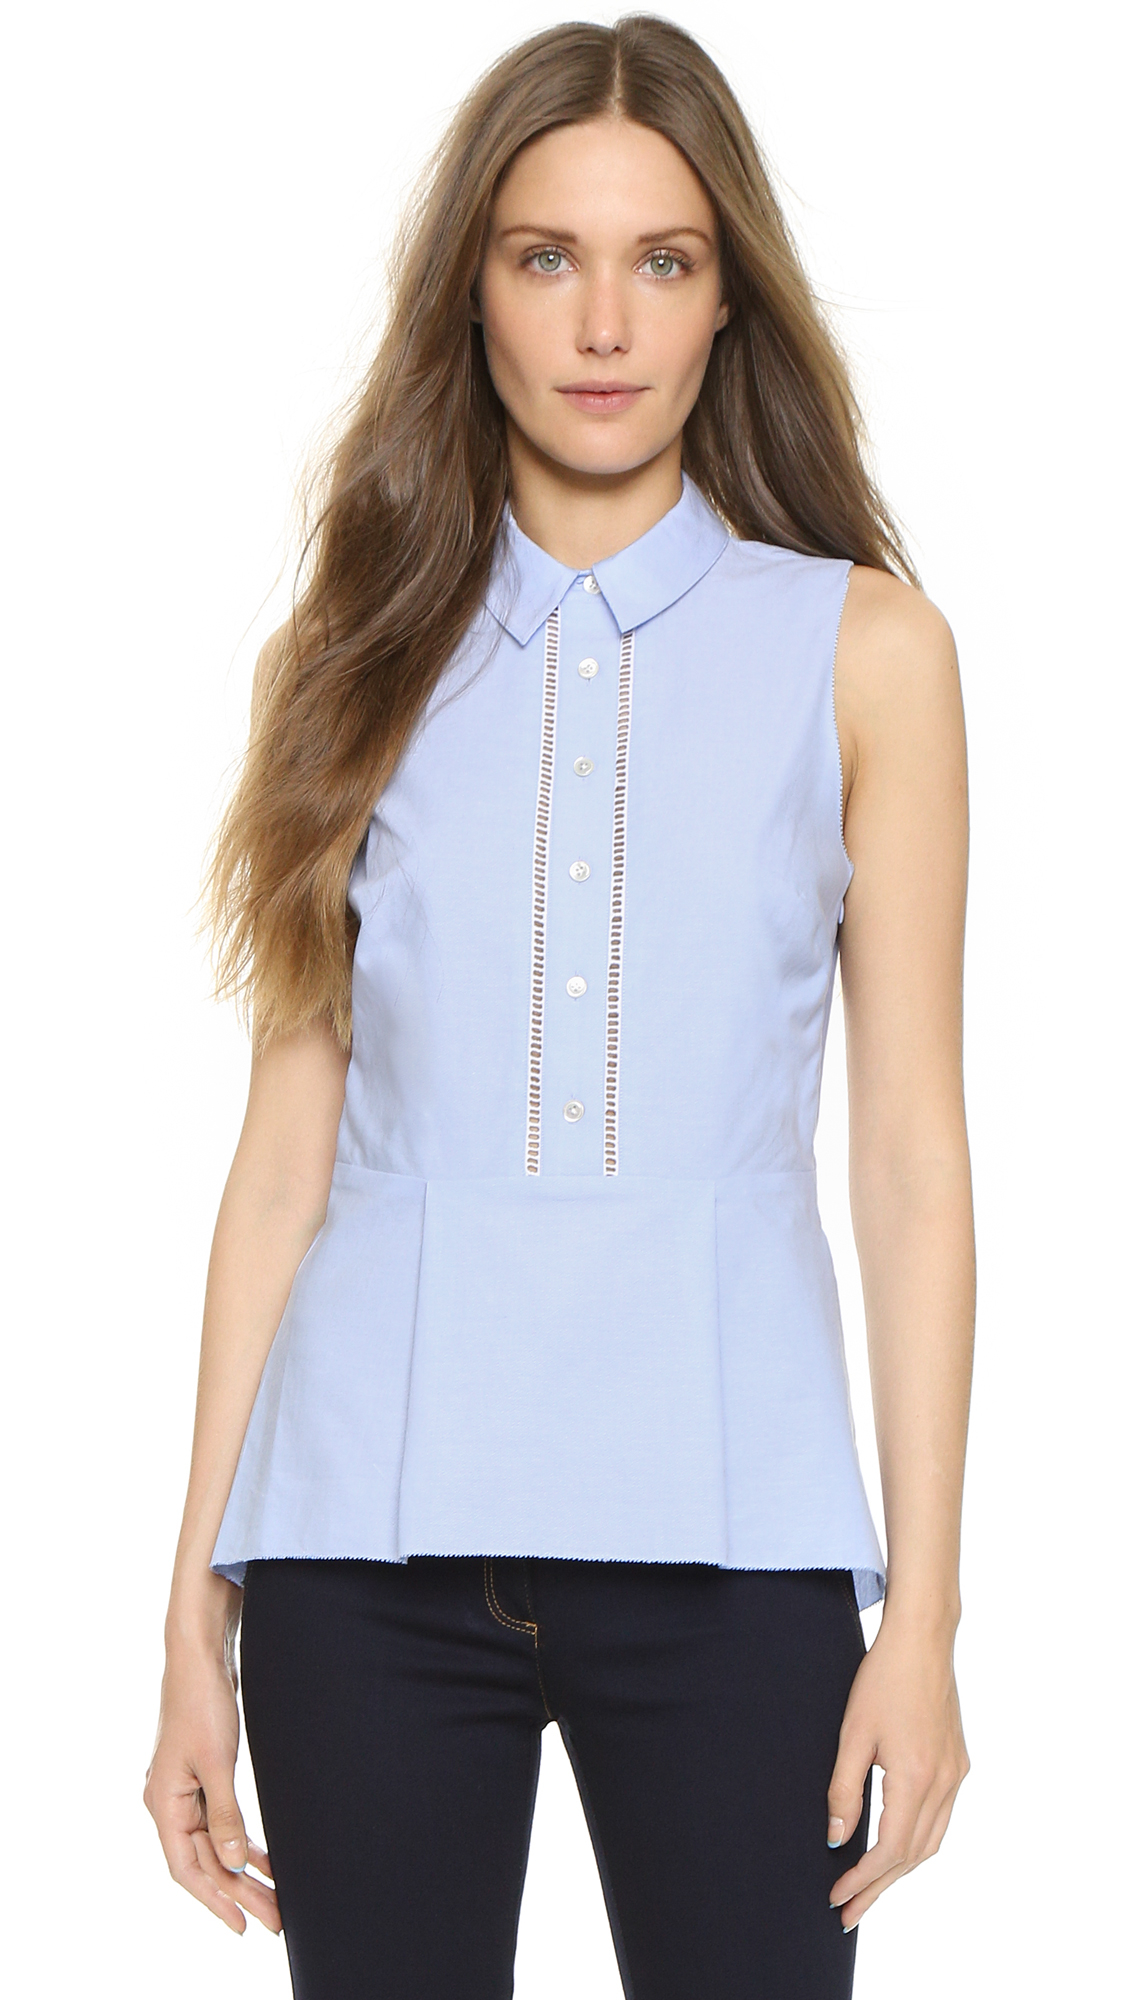 Lyst Veronica Beard Venture Peplum Top Light Blue In Blue